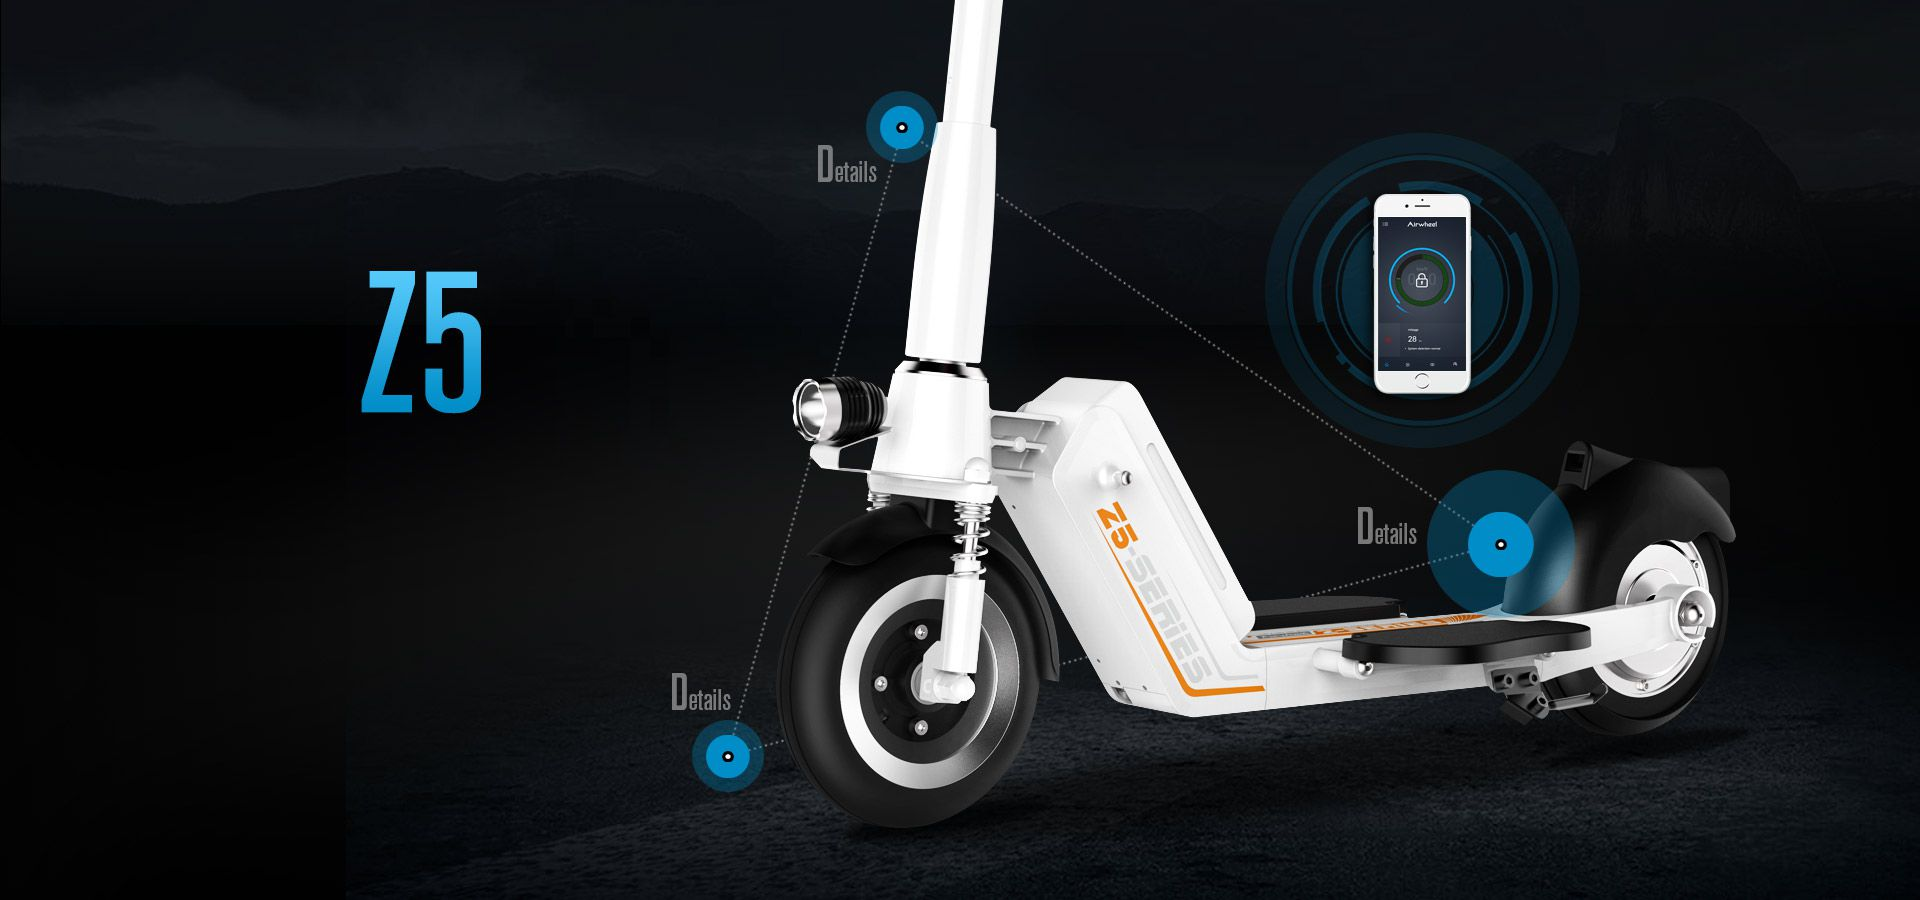 The two-wheeled electric scooter Z5